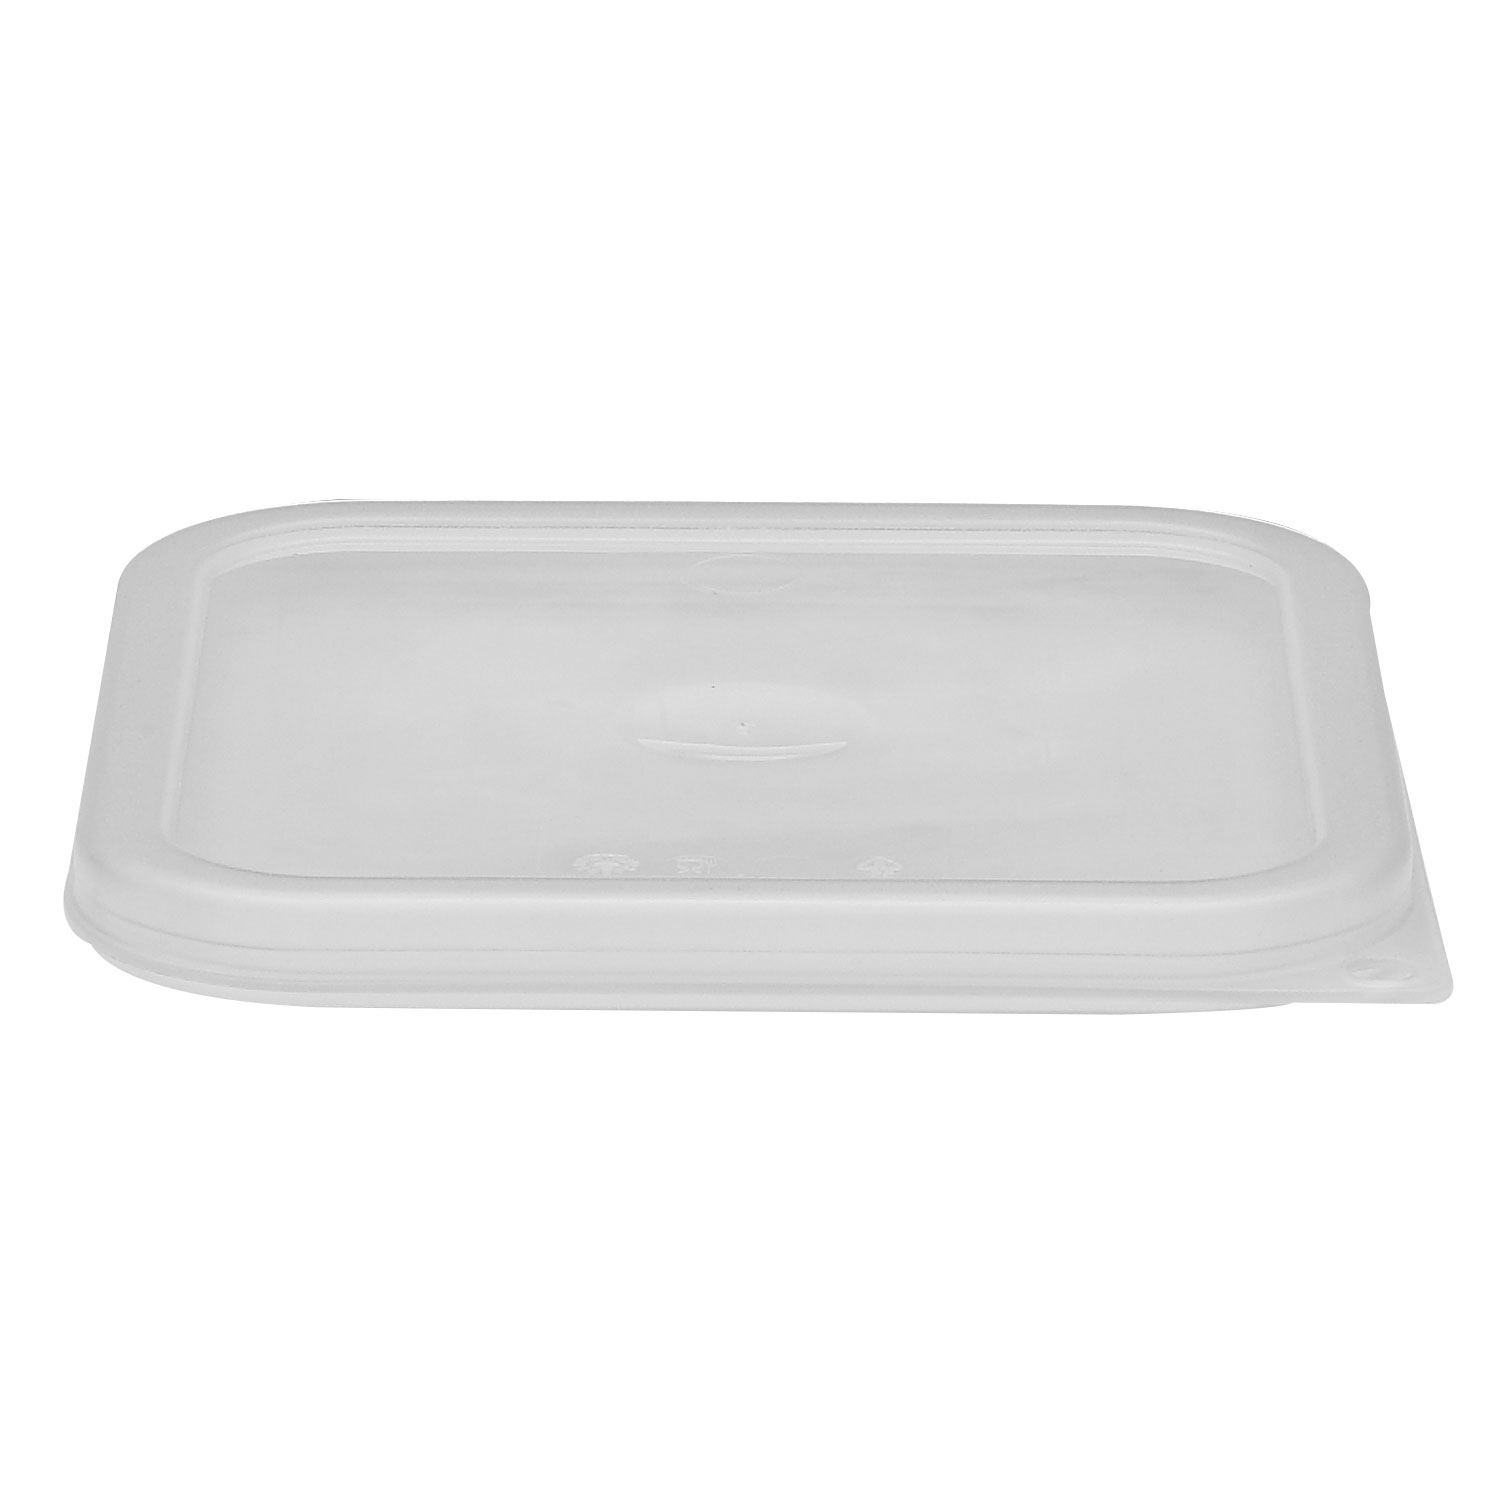 Cambro SFC6SCPP190 food storage container cover